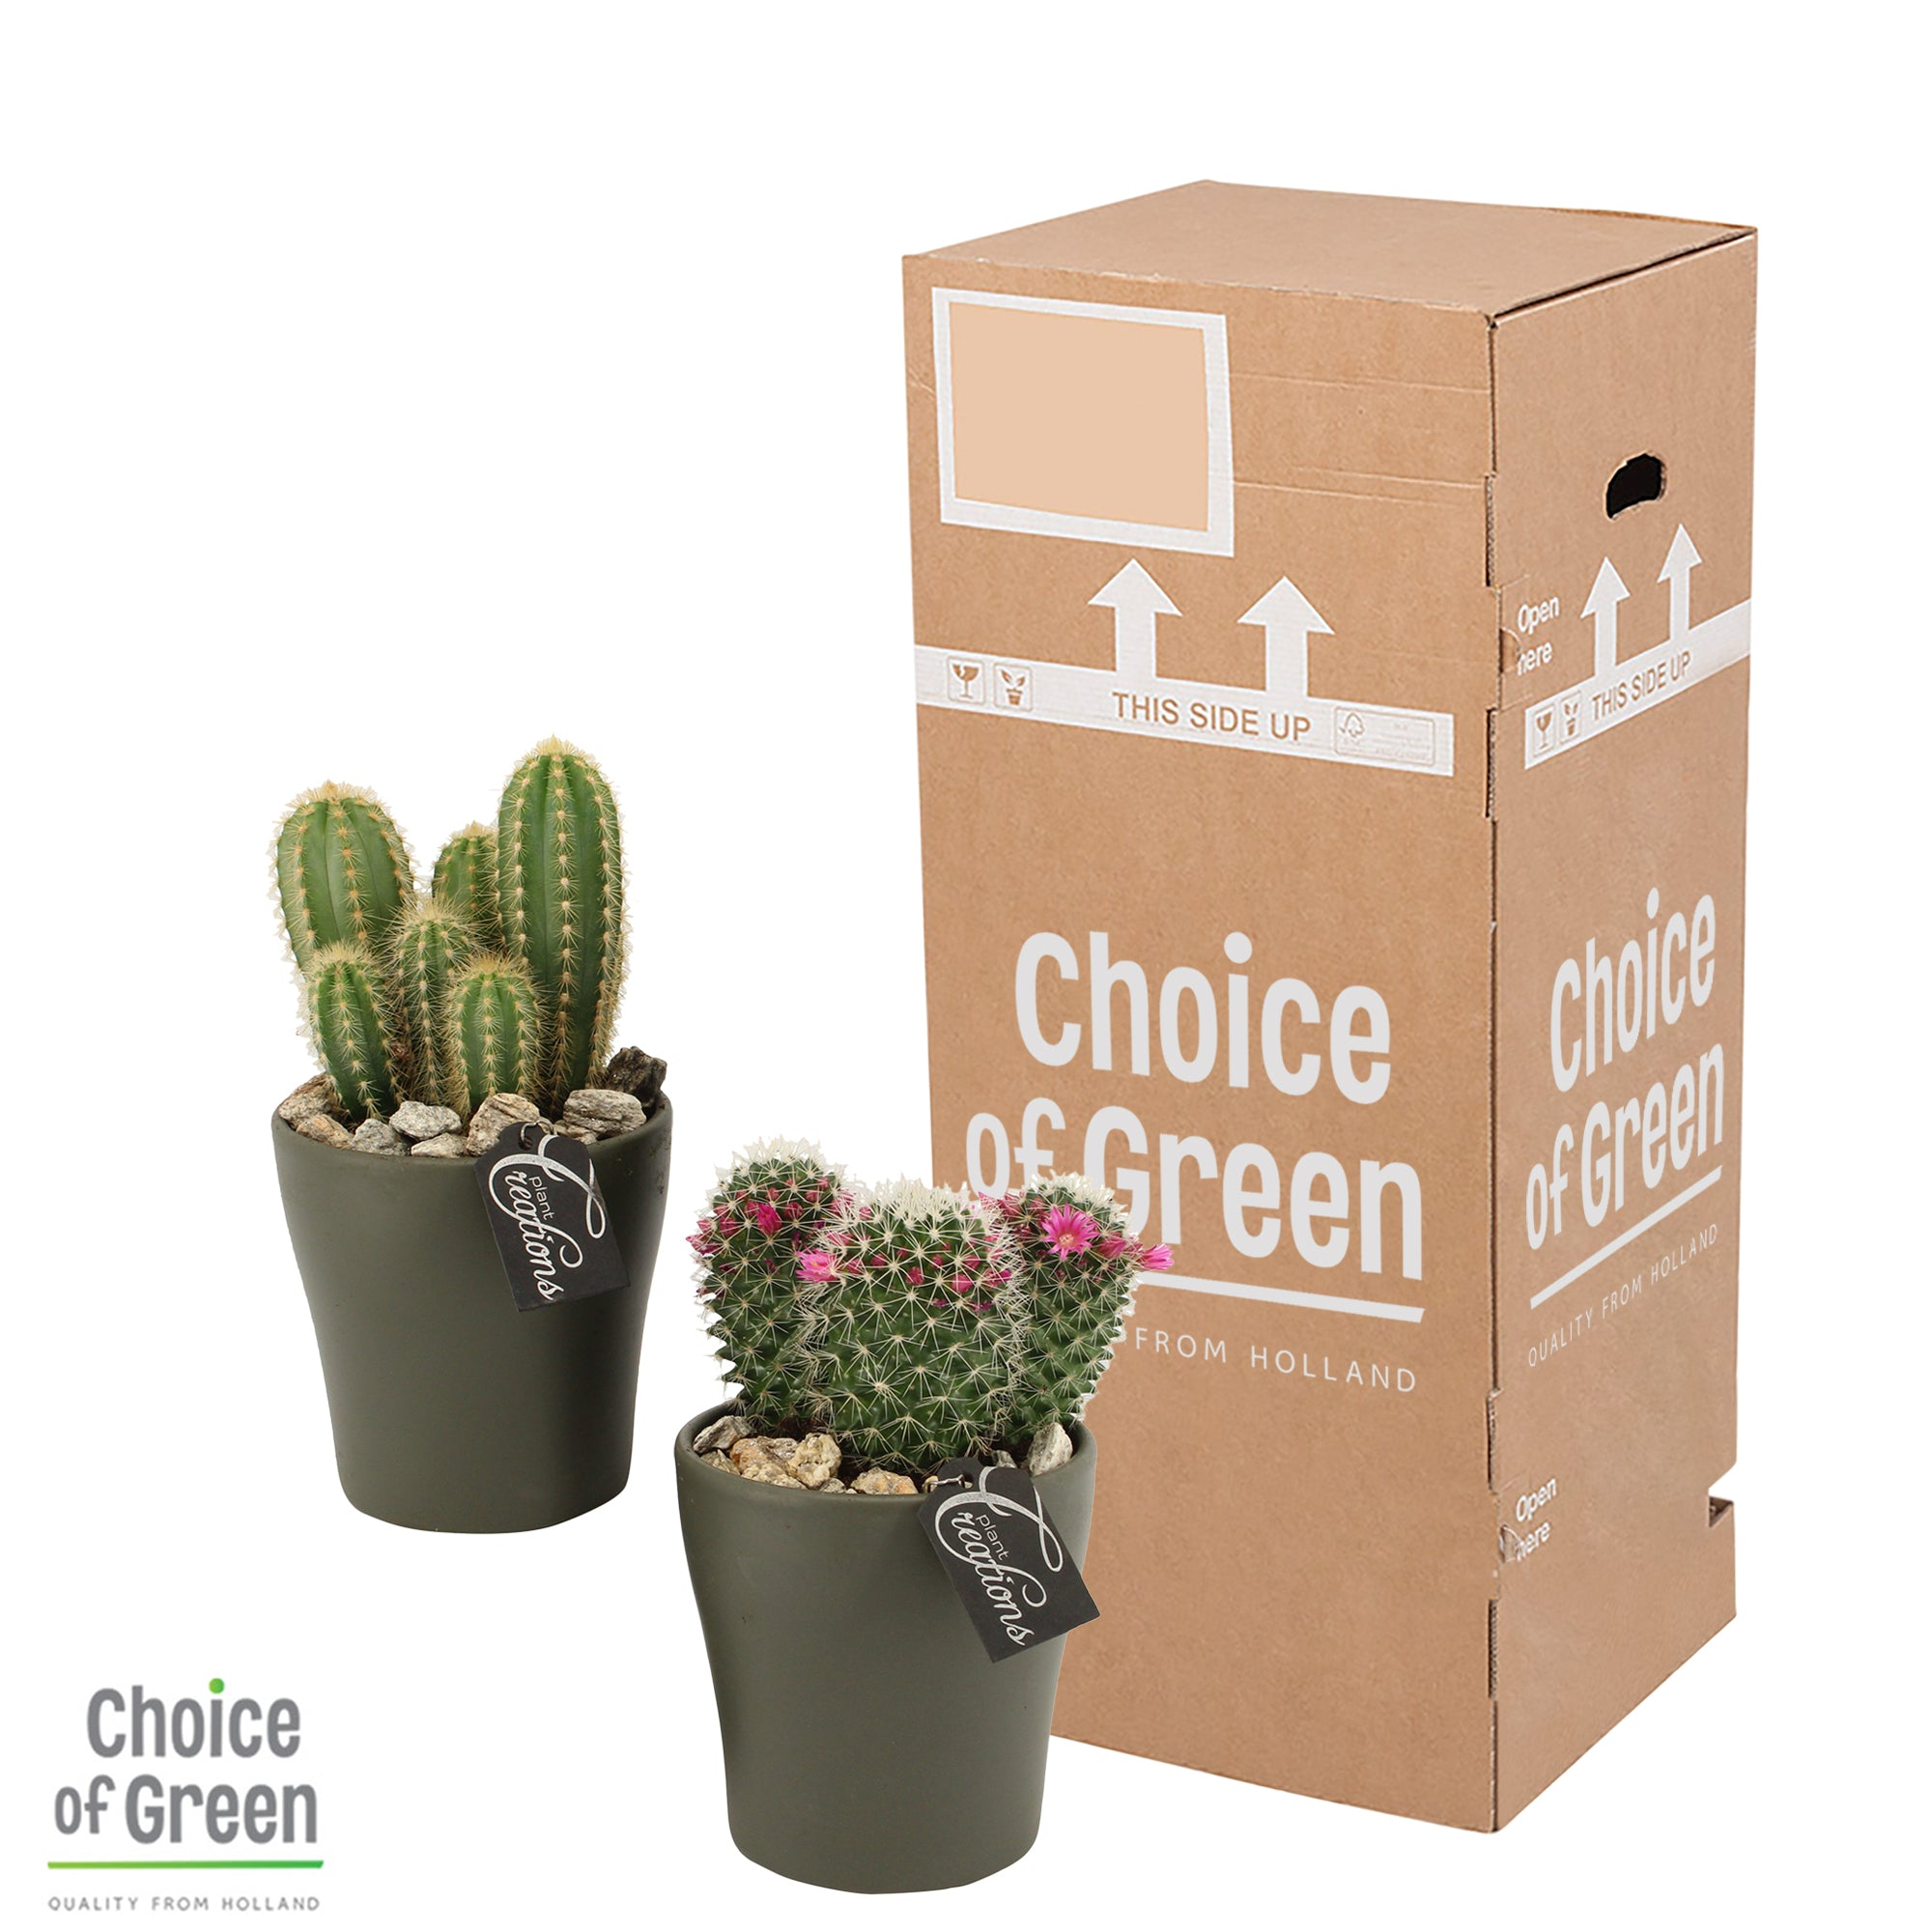 Choice of Green - Cactus in mix-keramiek - Hoogte 25 cm - Diameter pot 12 cm